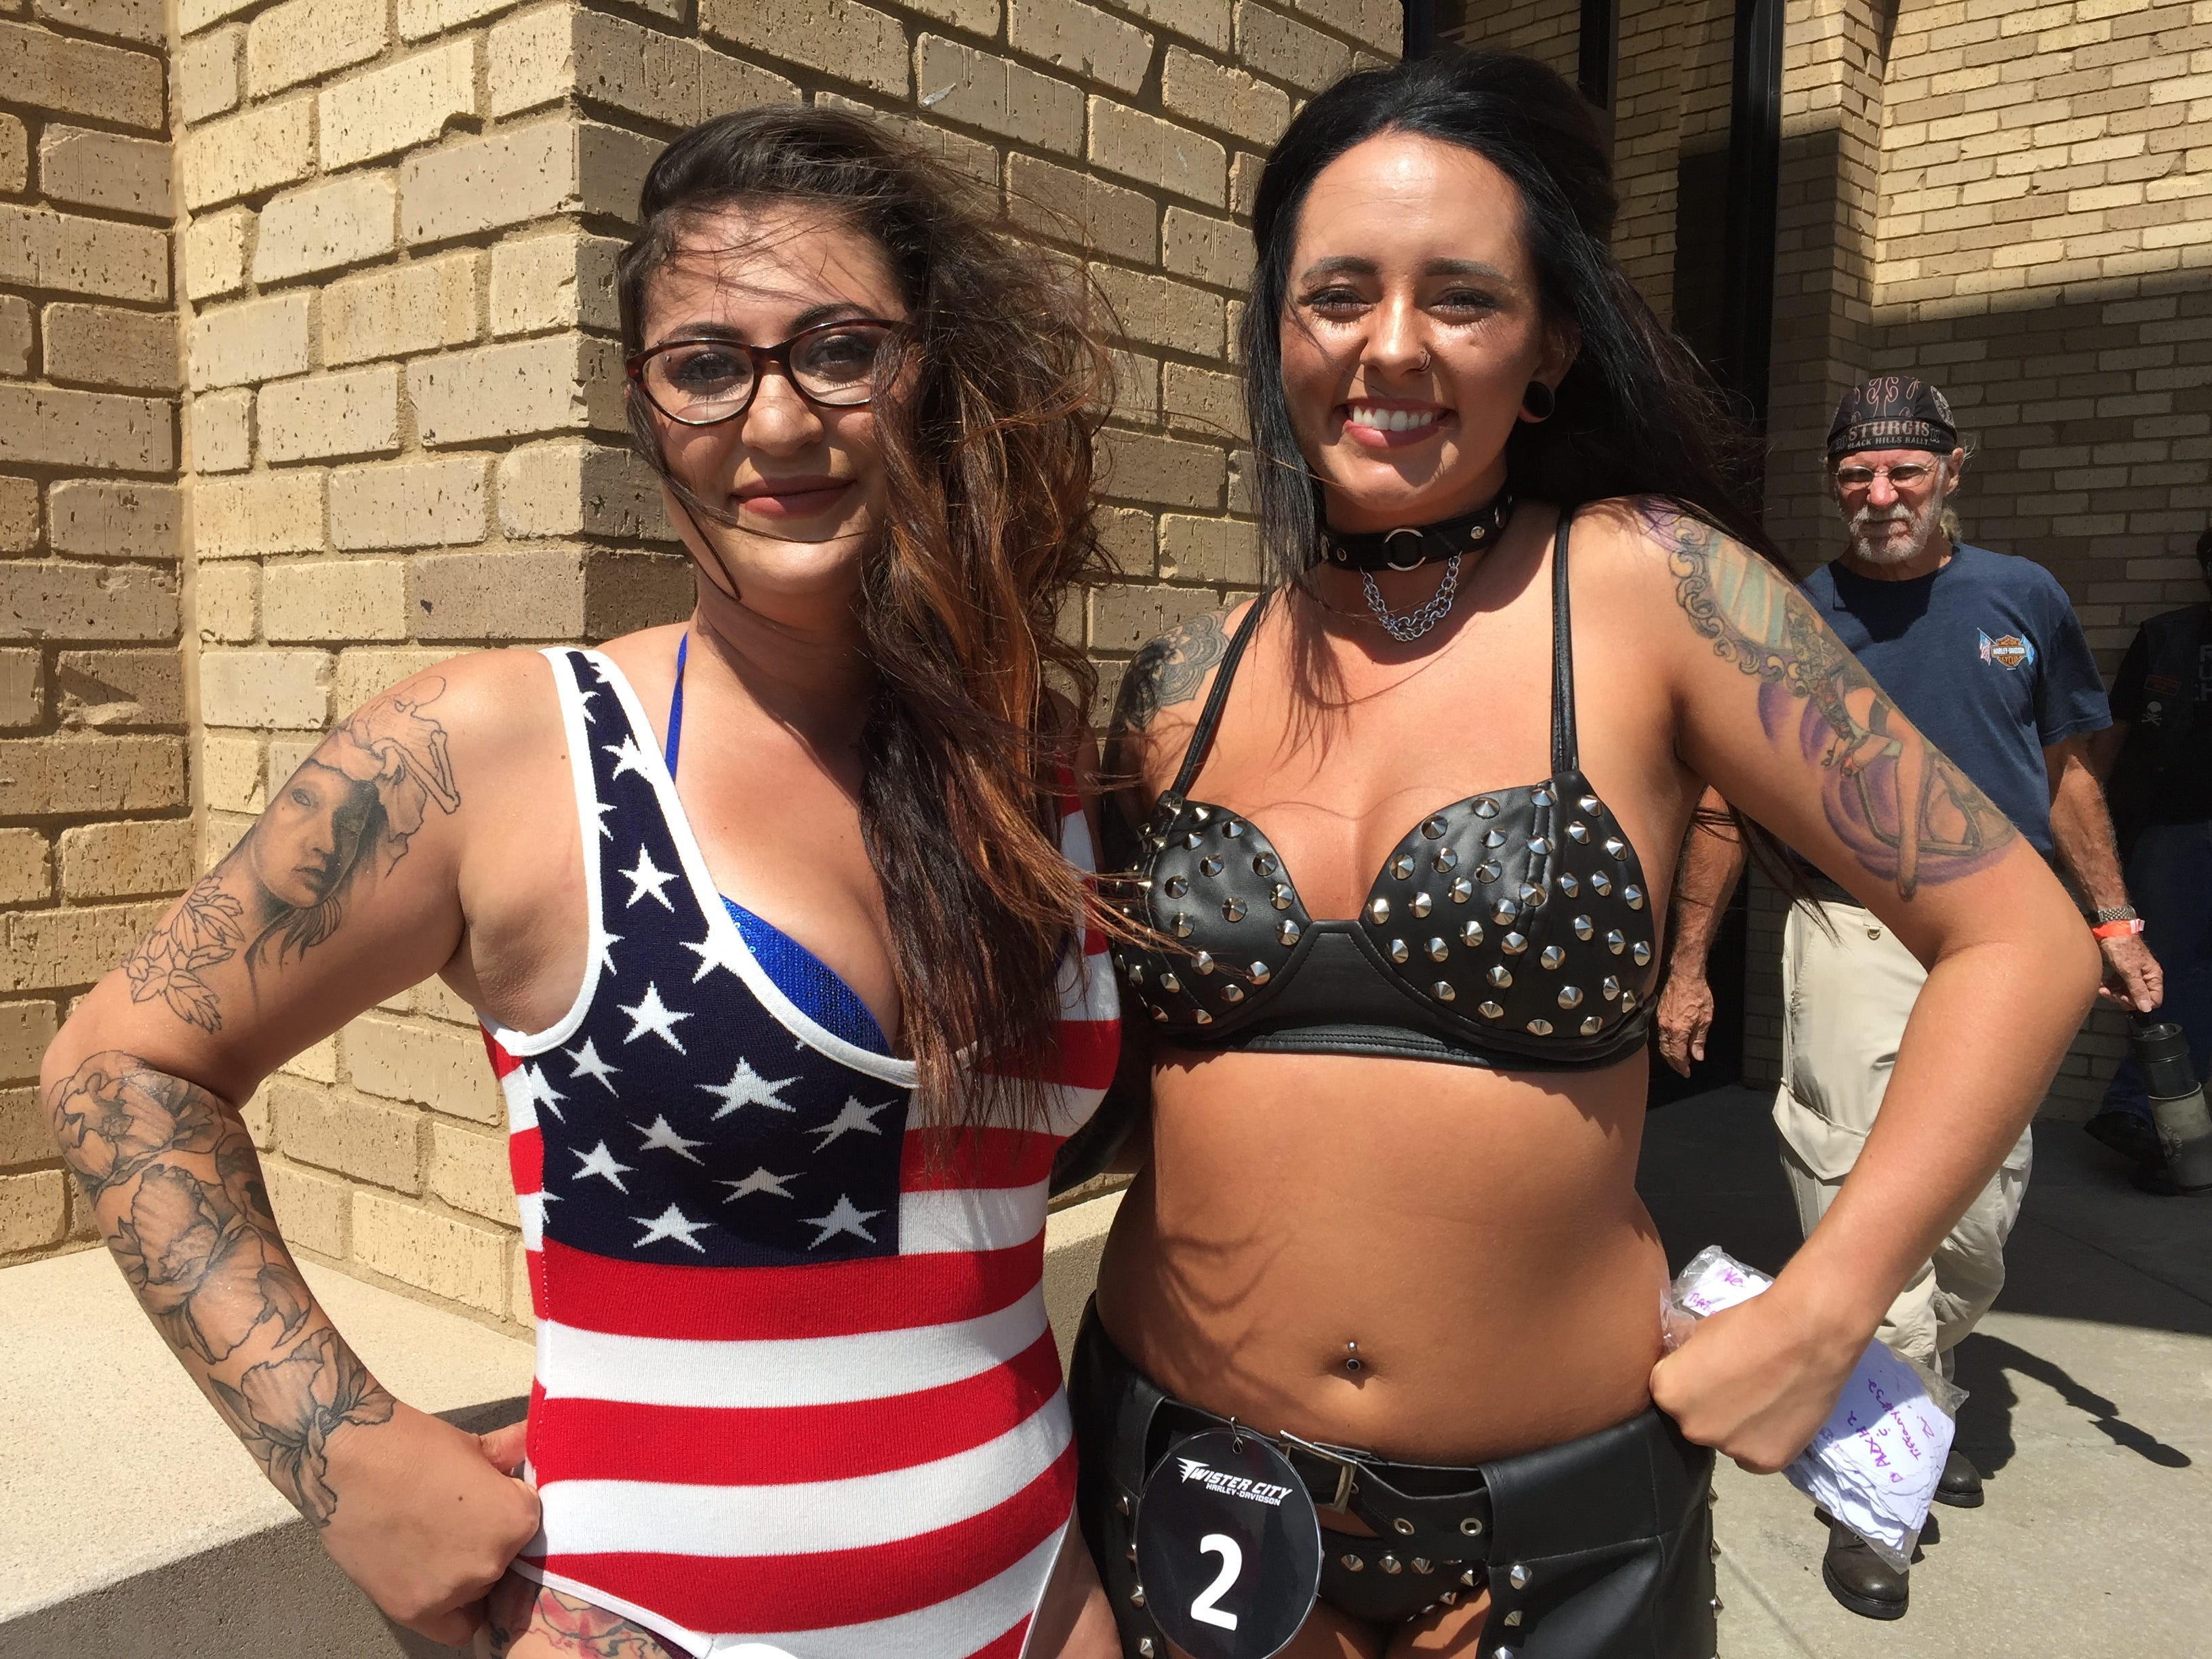 Women were competing to be chosen for the Twister City Harley-Davidson annual calendar. Customers could vote.